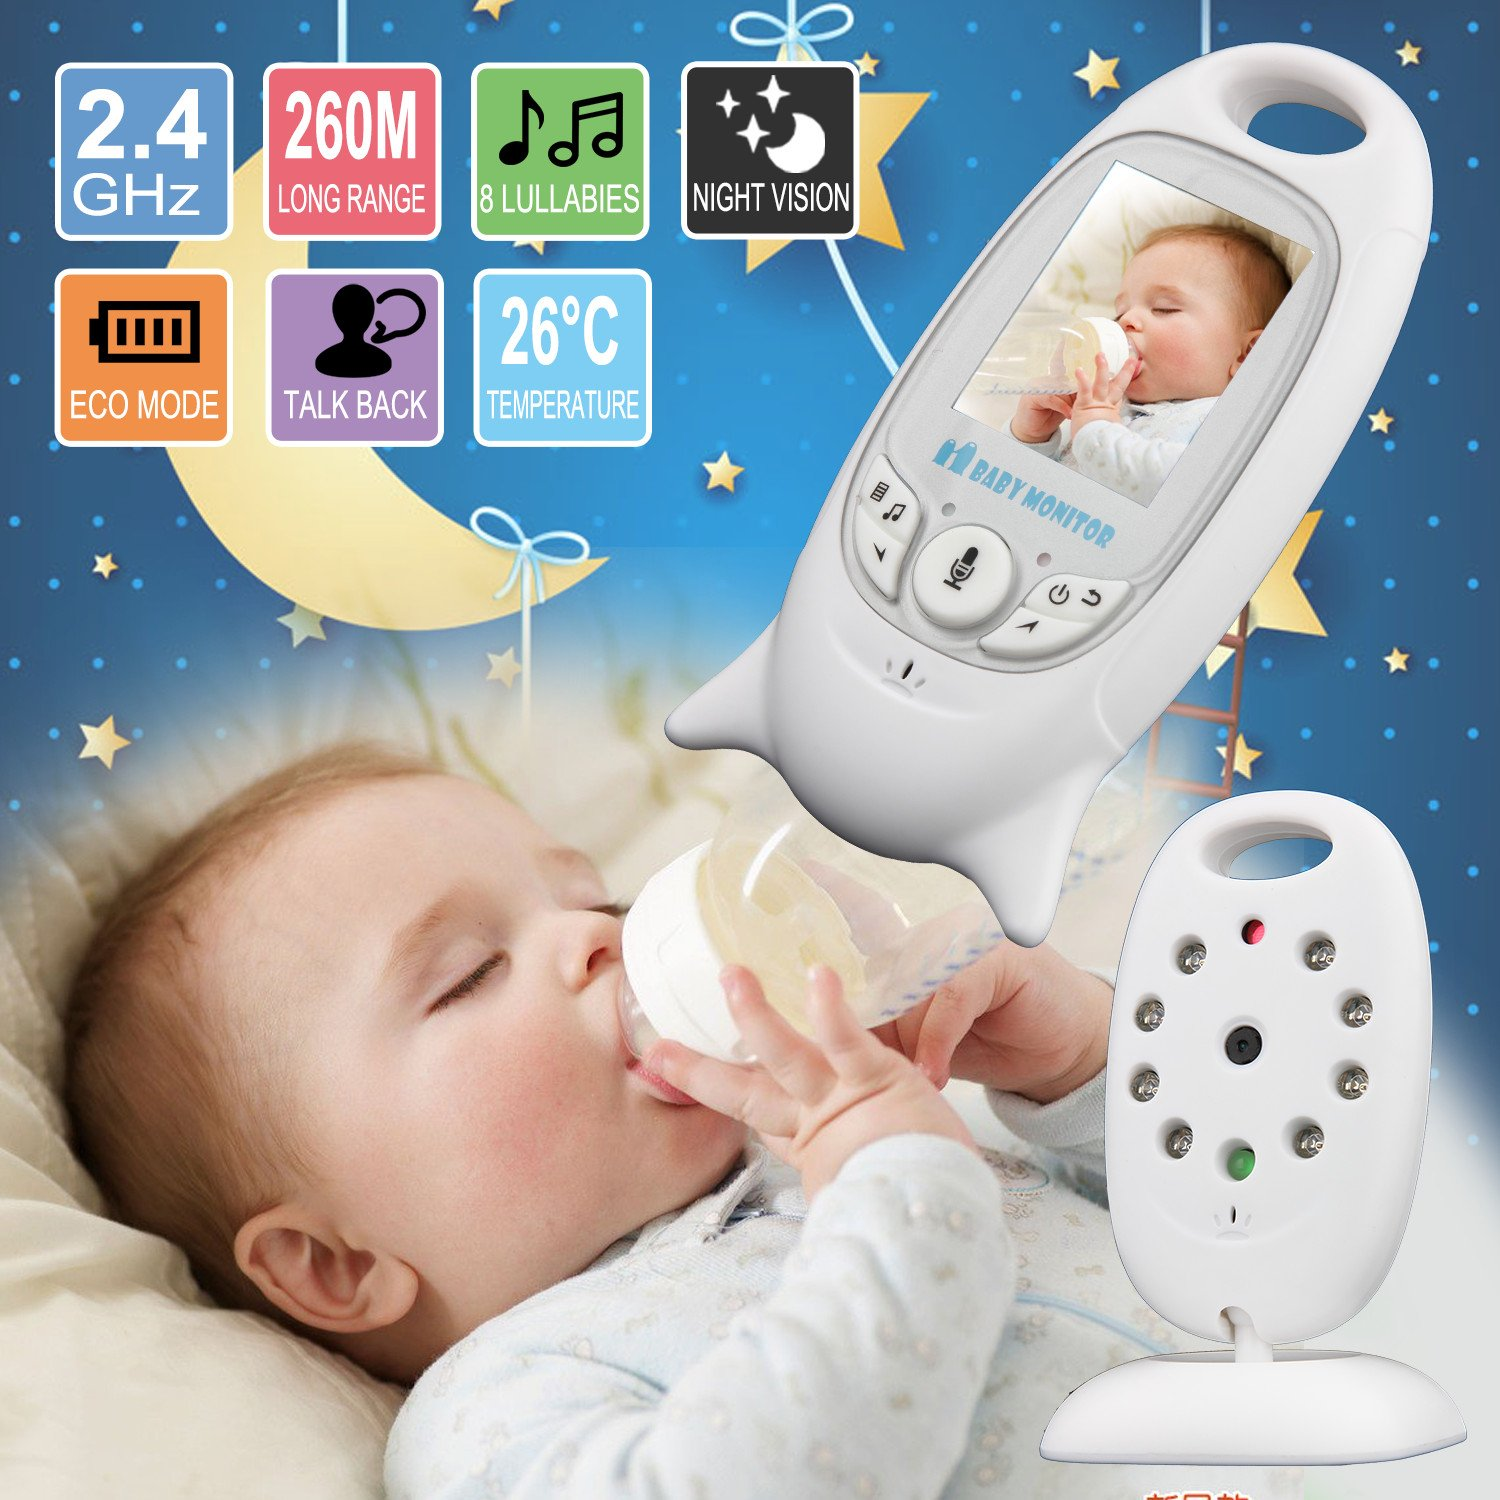 2 0 wireless baby monitor vb601 audio video camera night vision safety viewer ebay. Black Bedroom Furniture Sets. Home Design Ideas